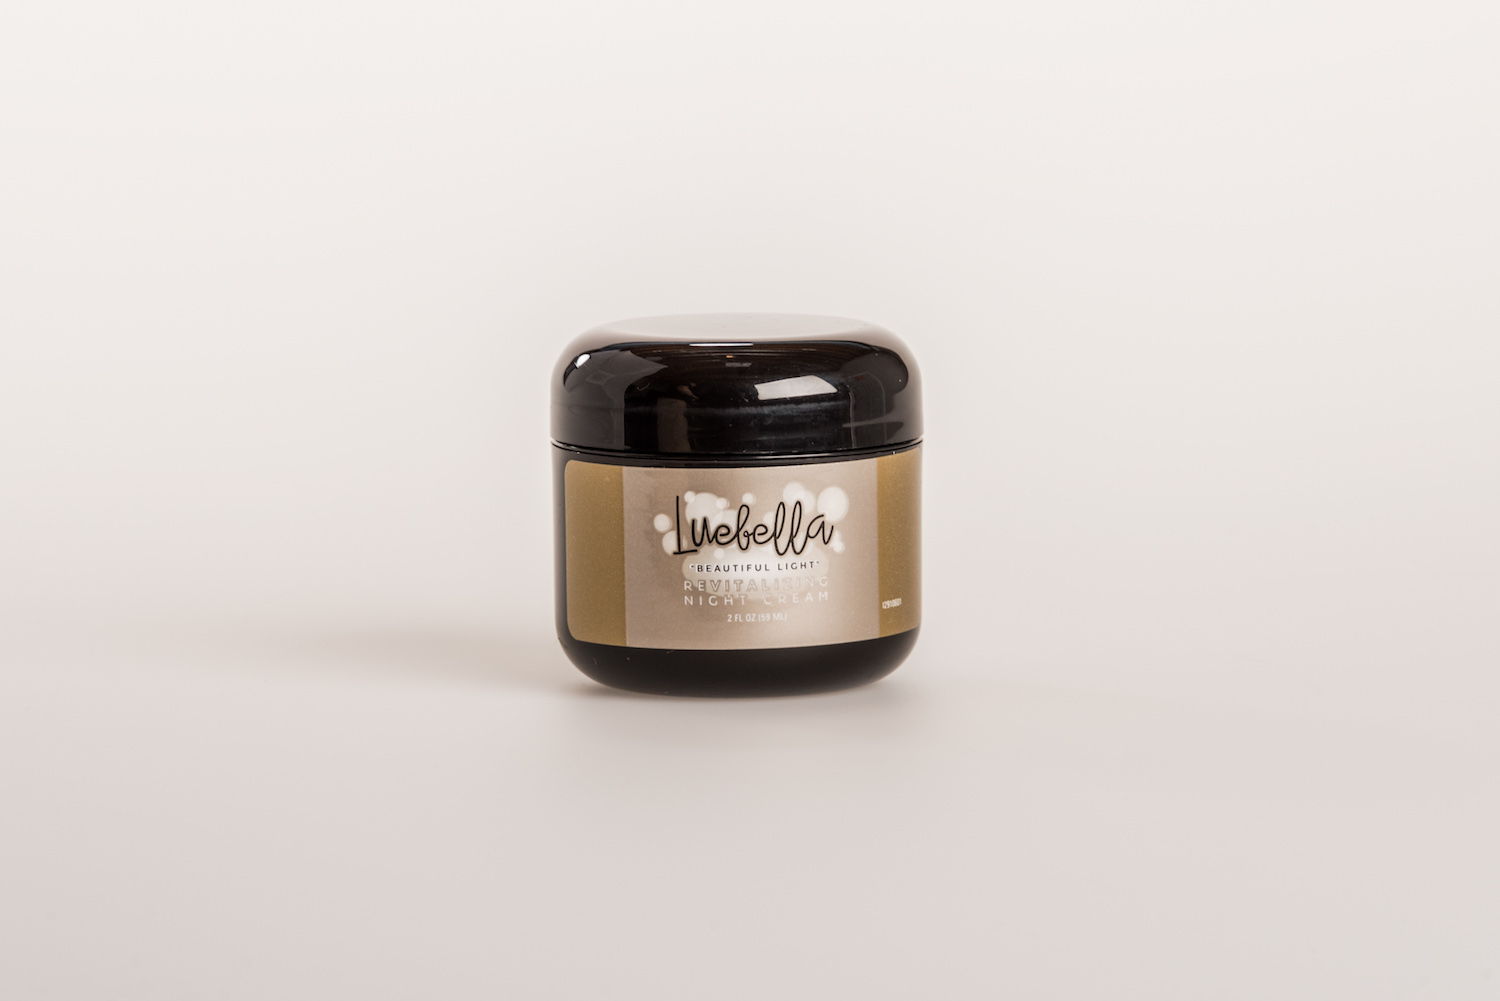 Luebella Revitalizing Night Cream has a key ingredient for anti-aging skin care products.